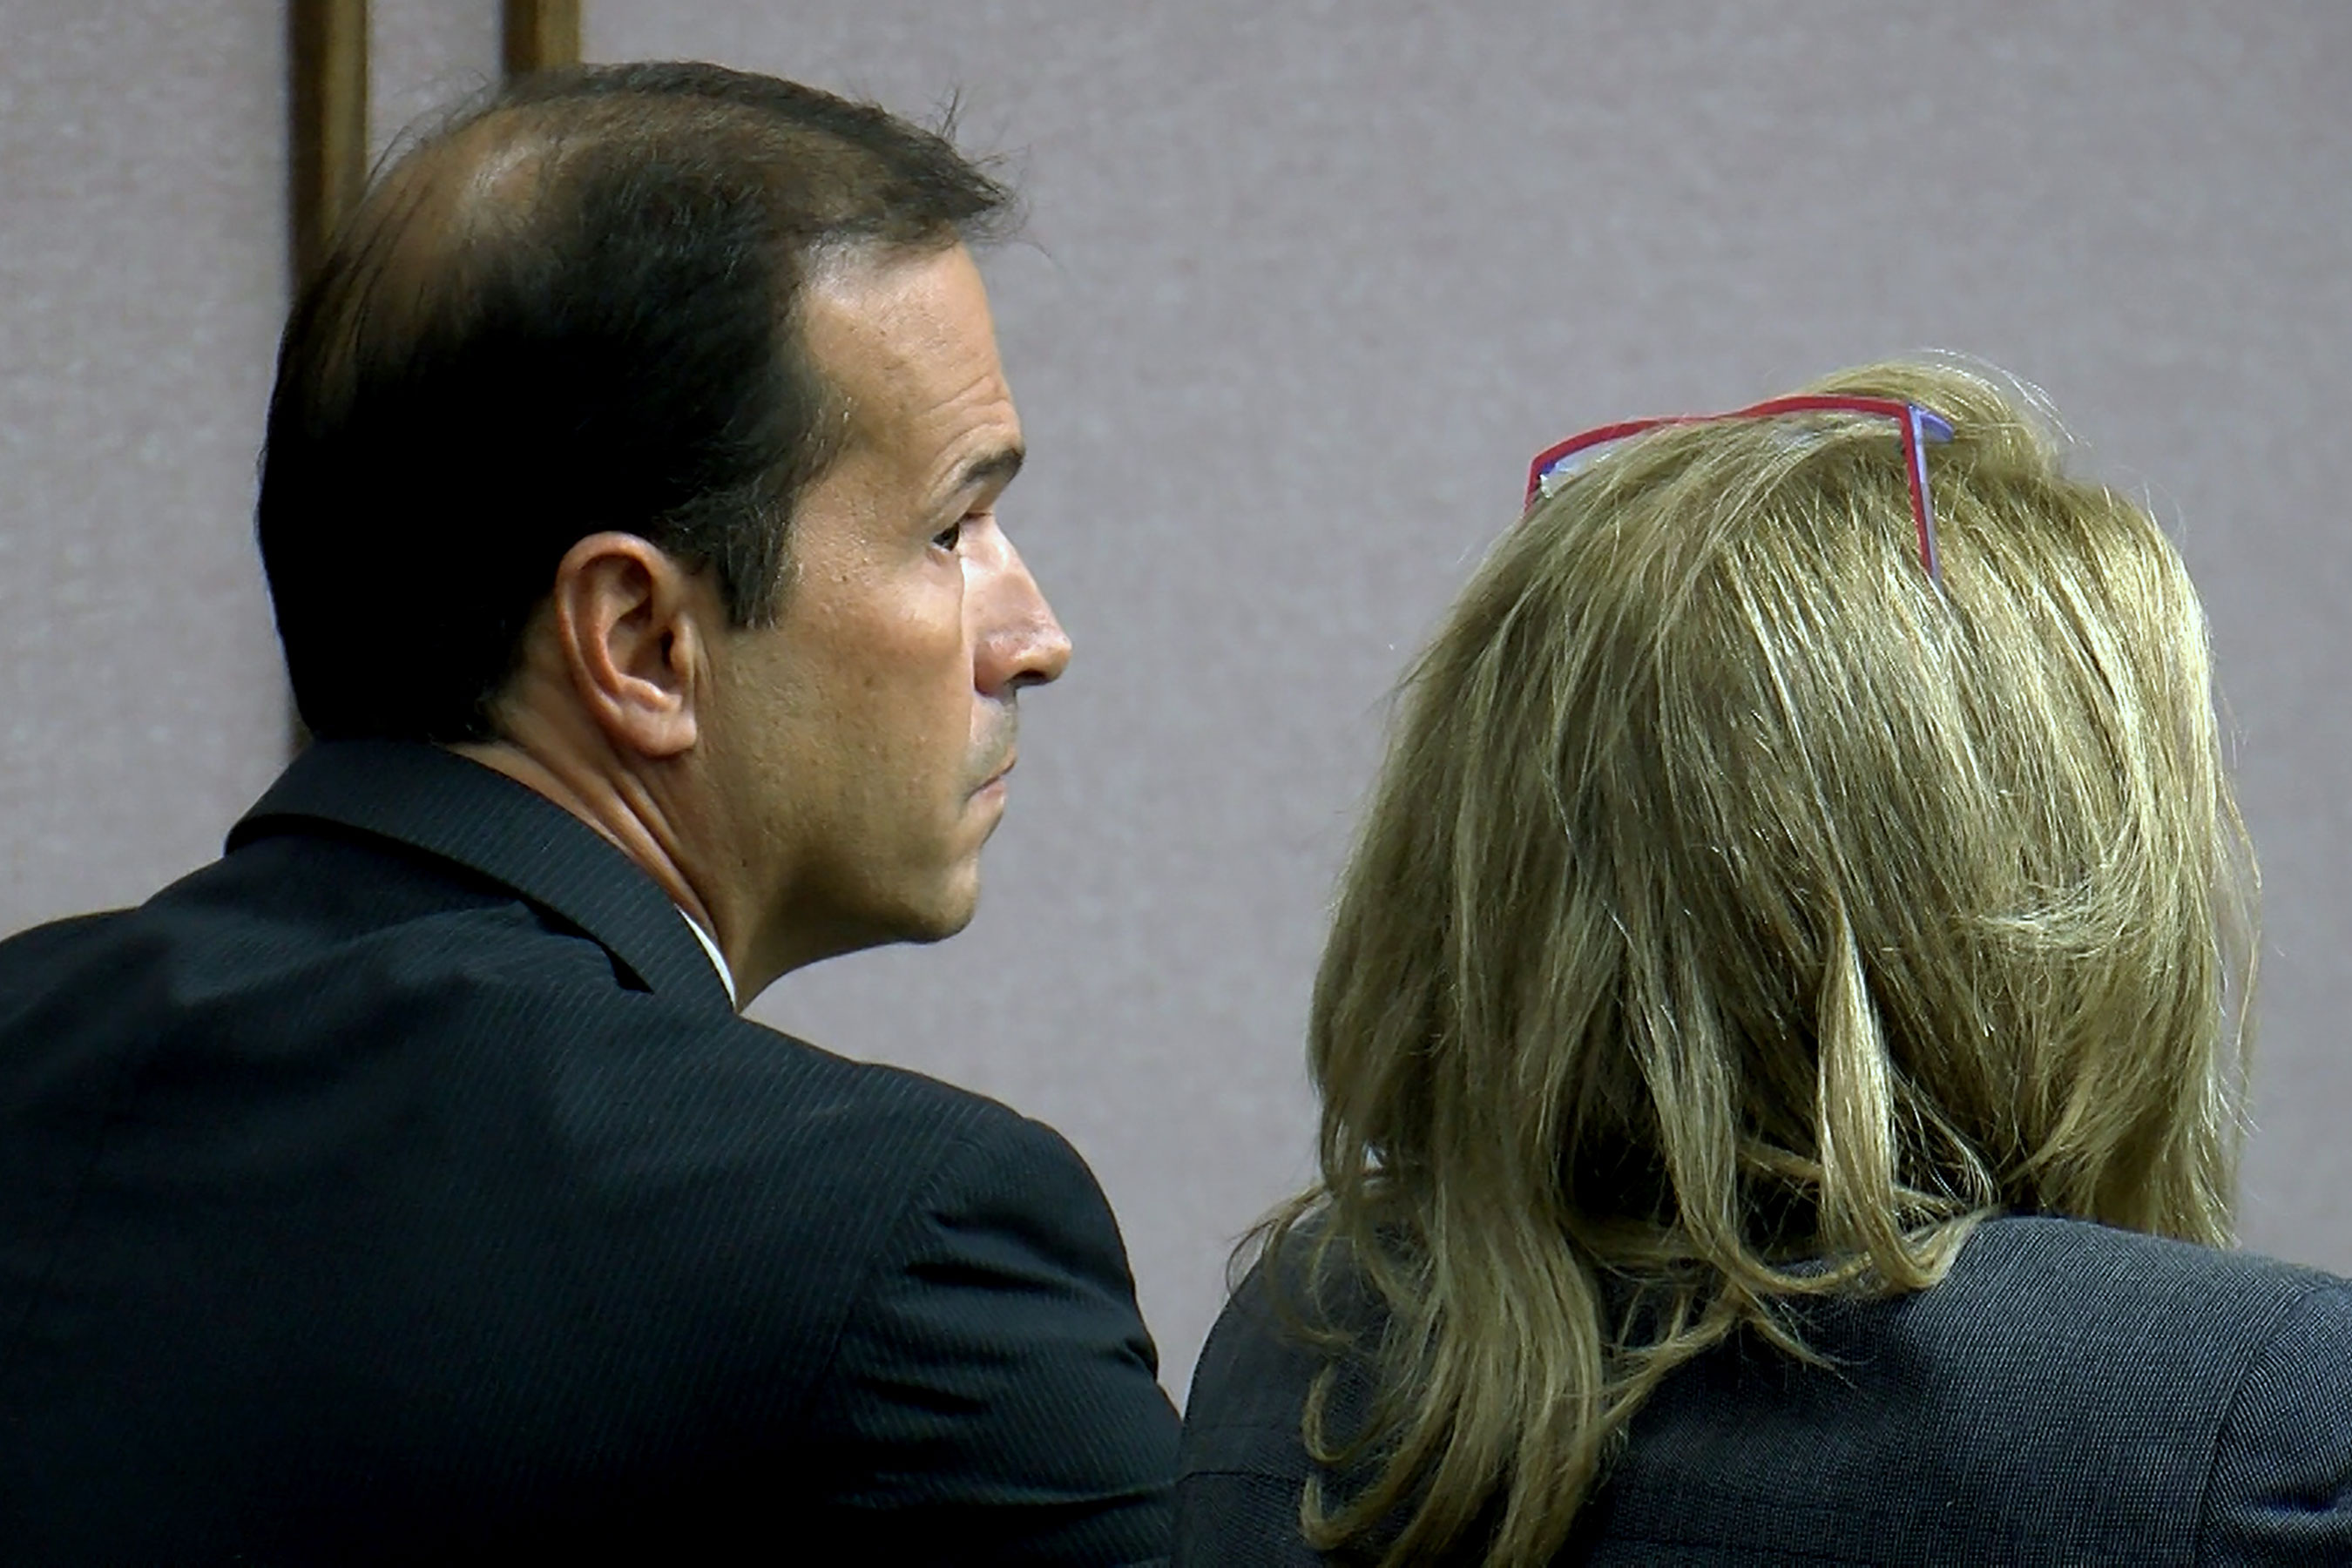 Photo: Terry Maketa Trial - AP